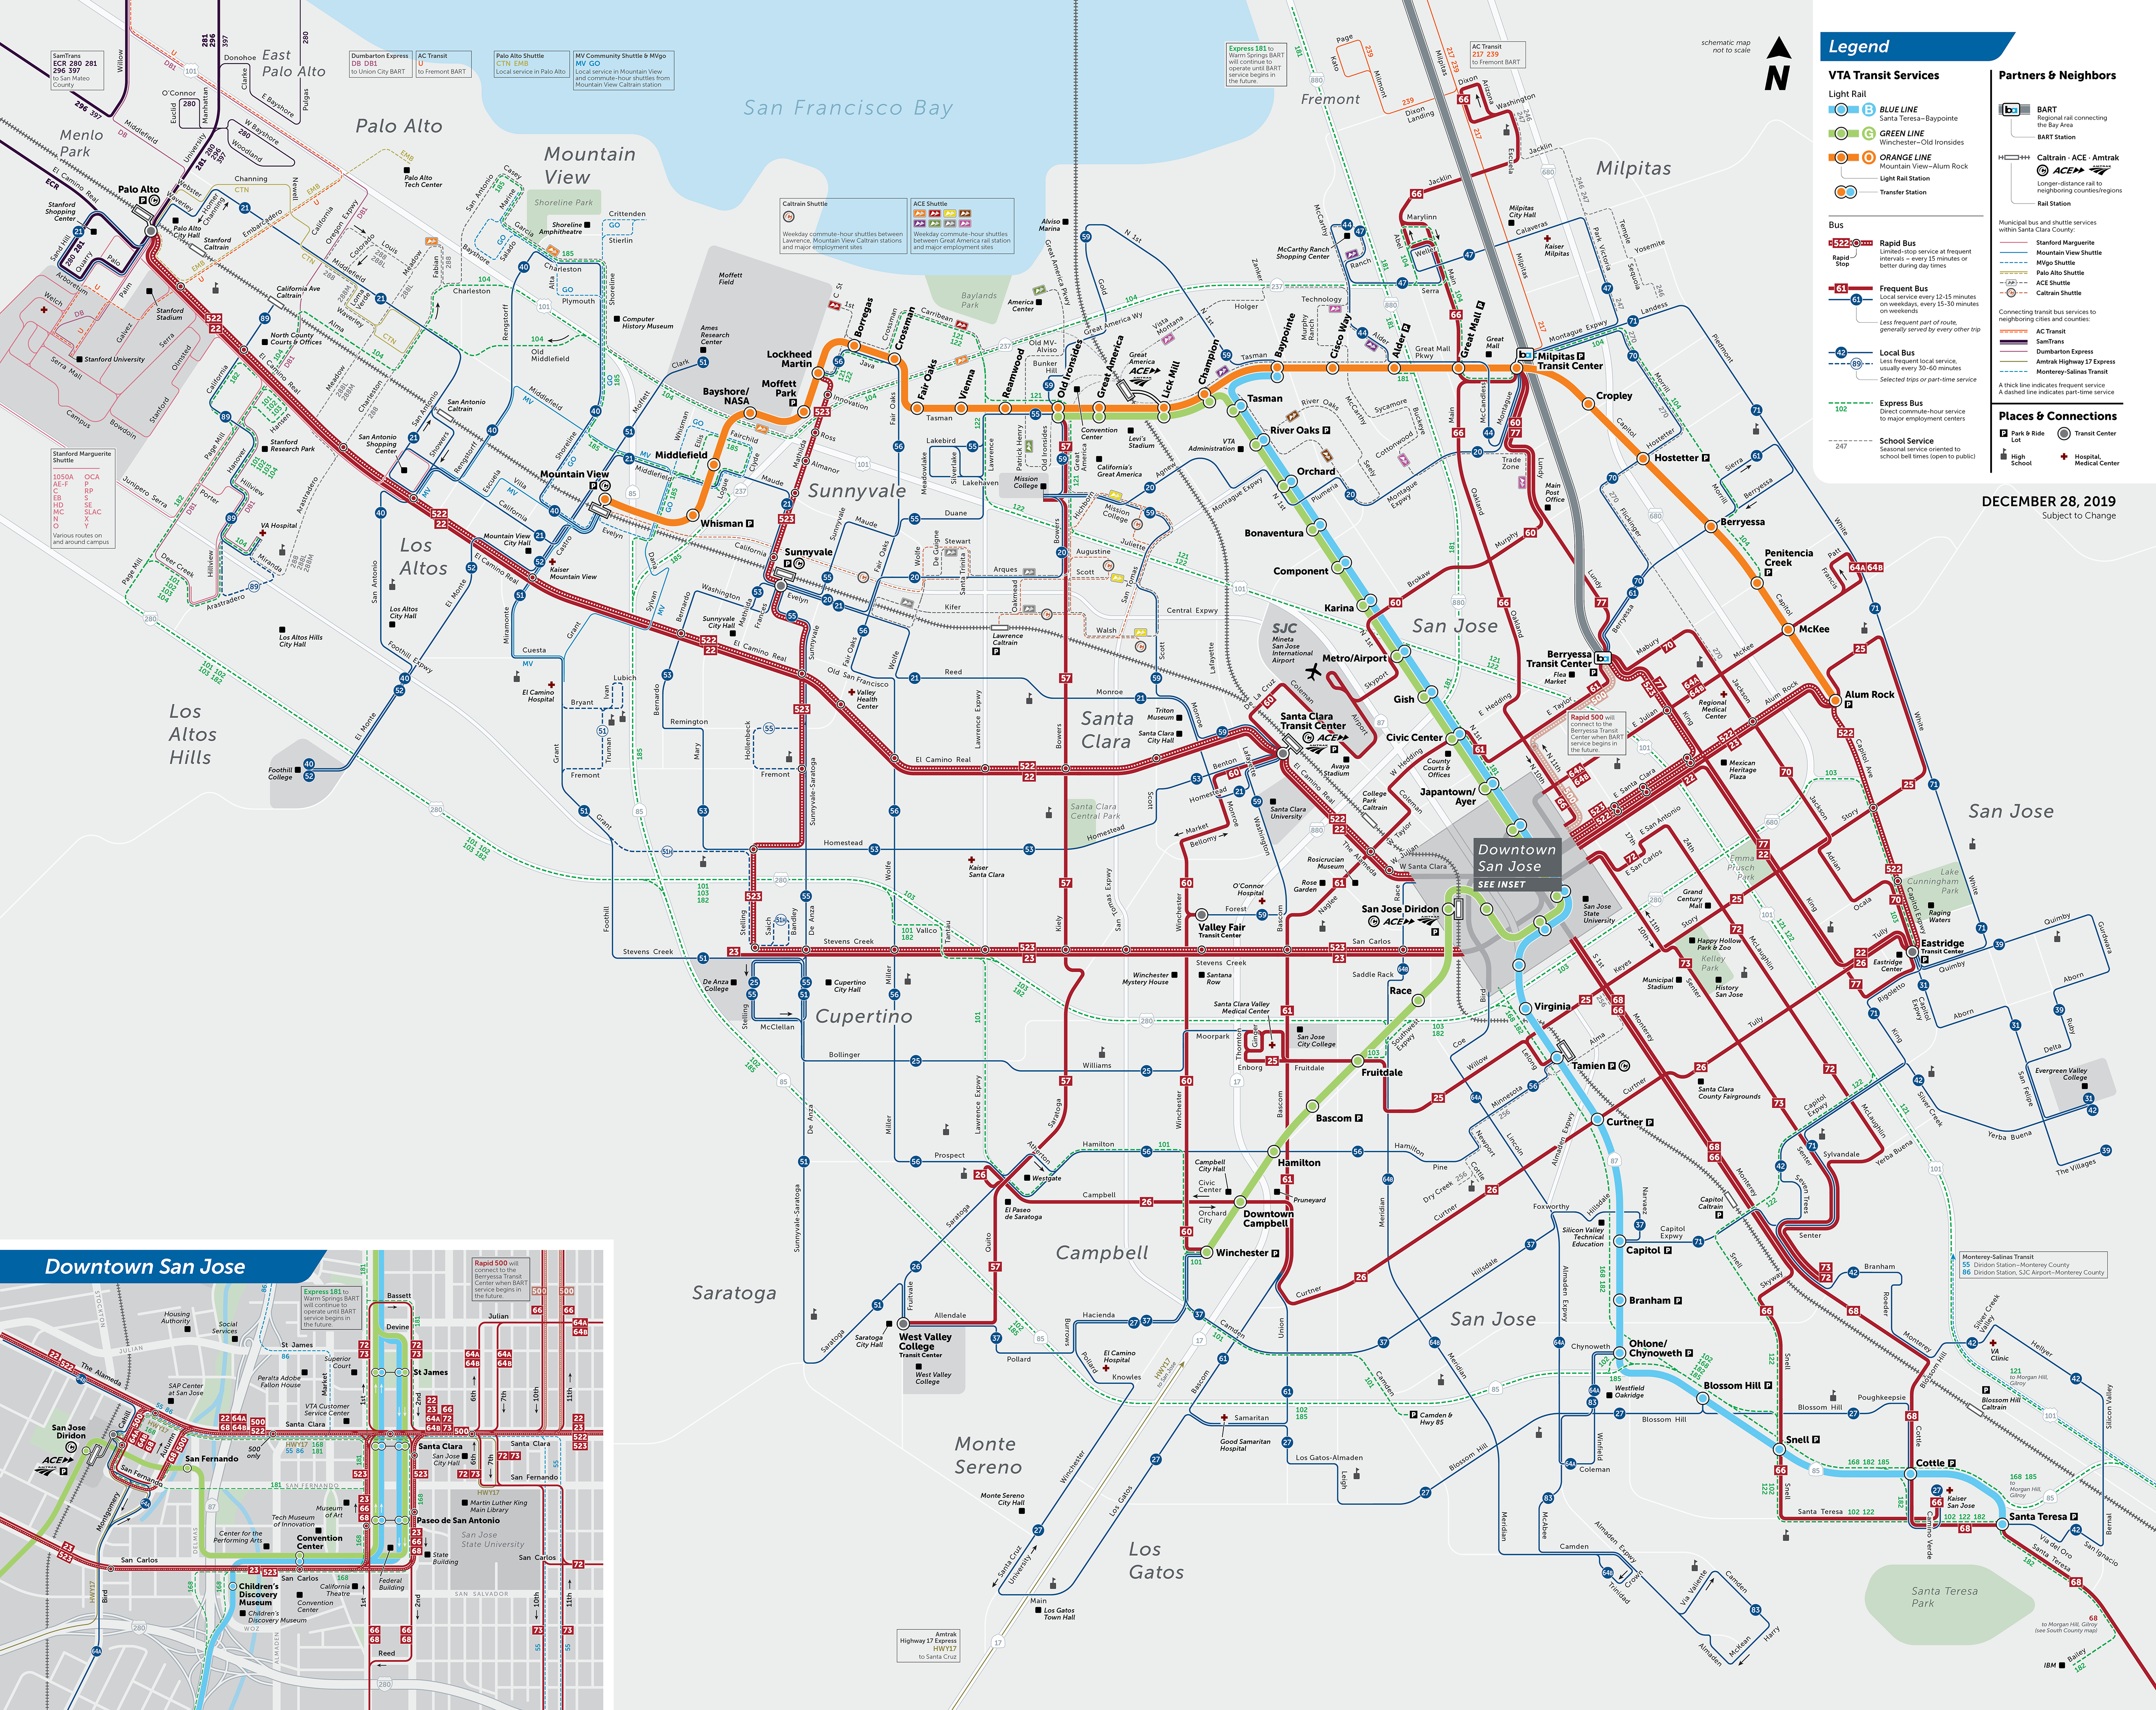 System map showing VTA's New Service